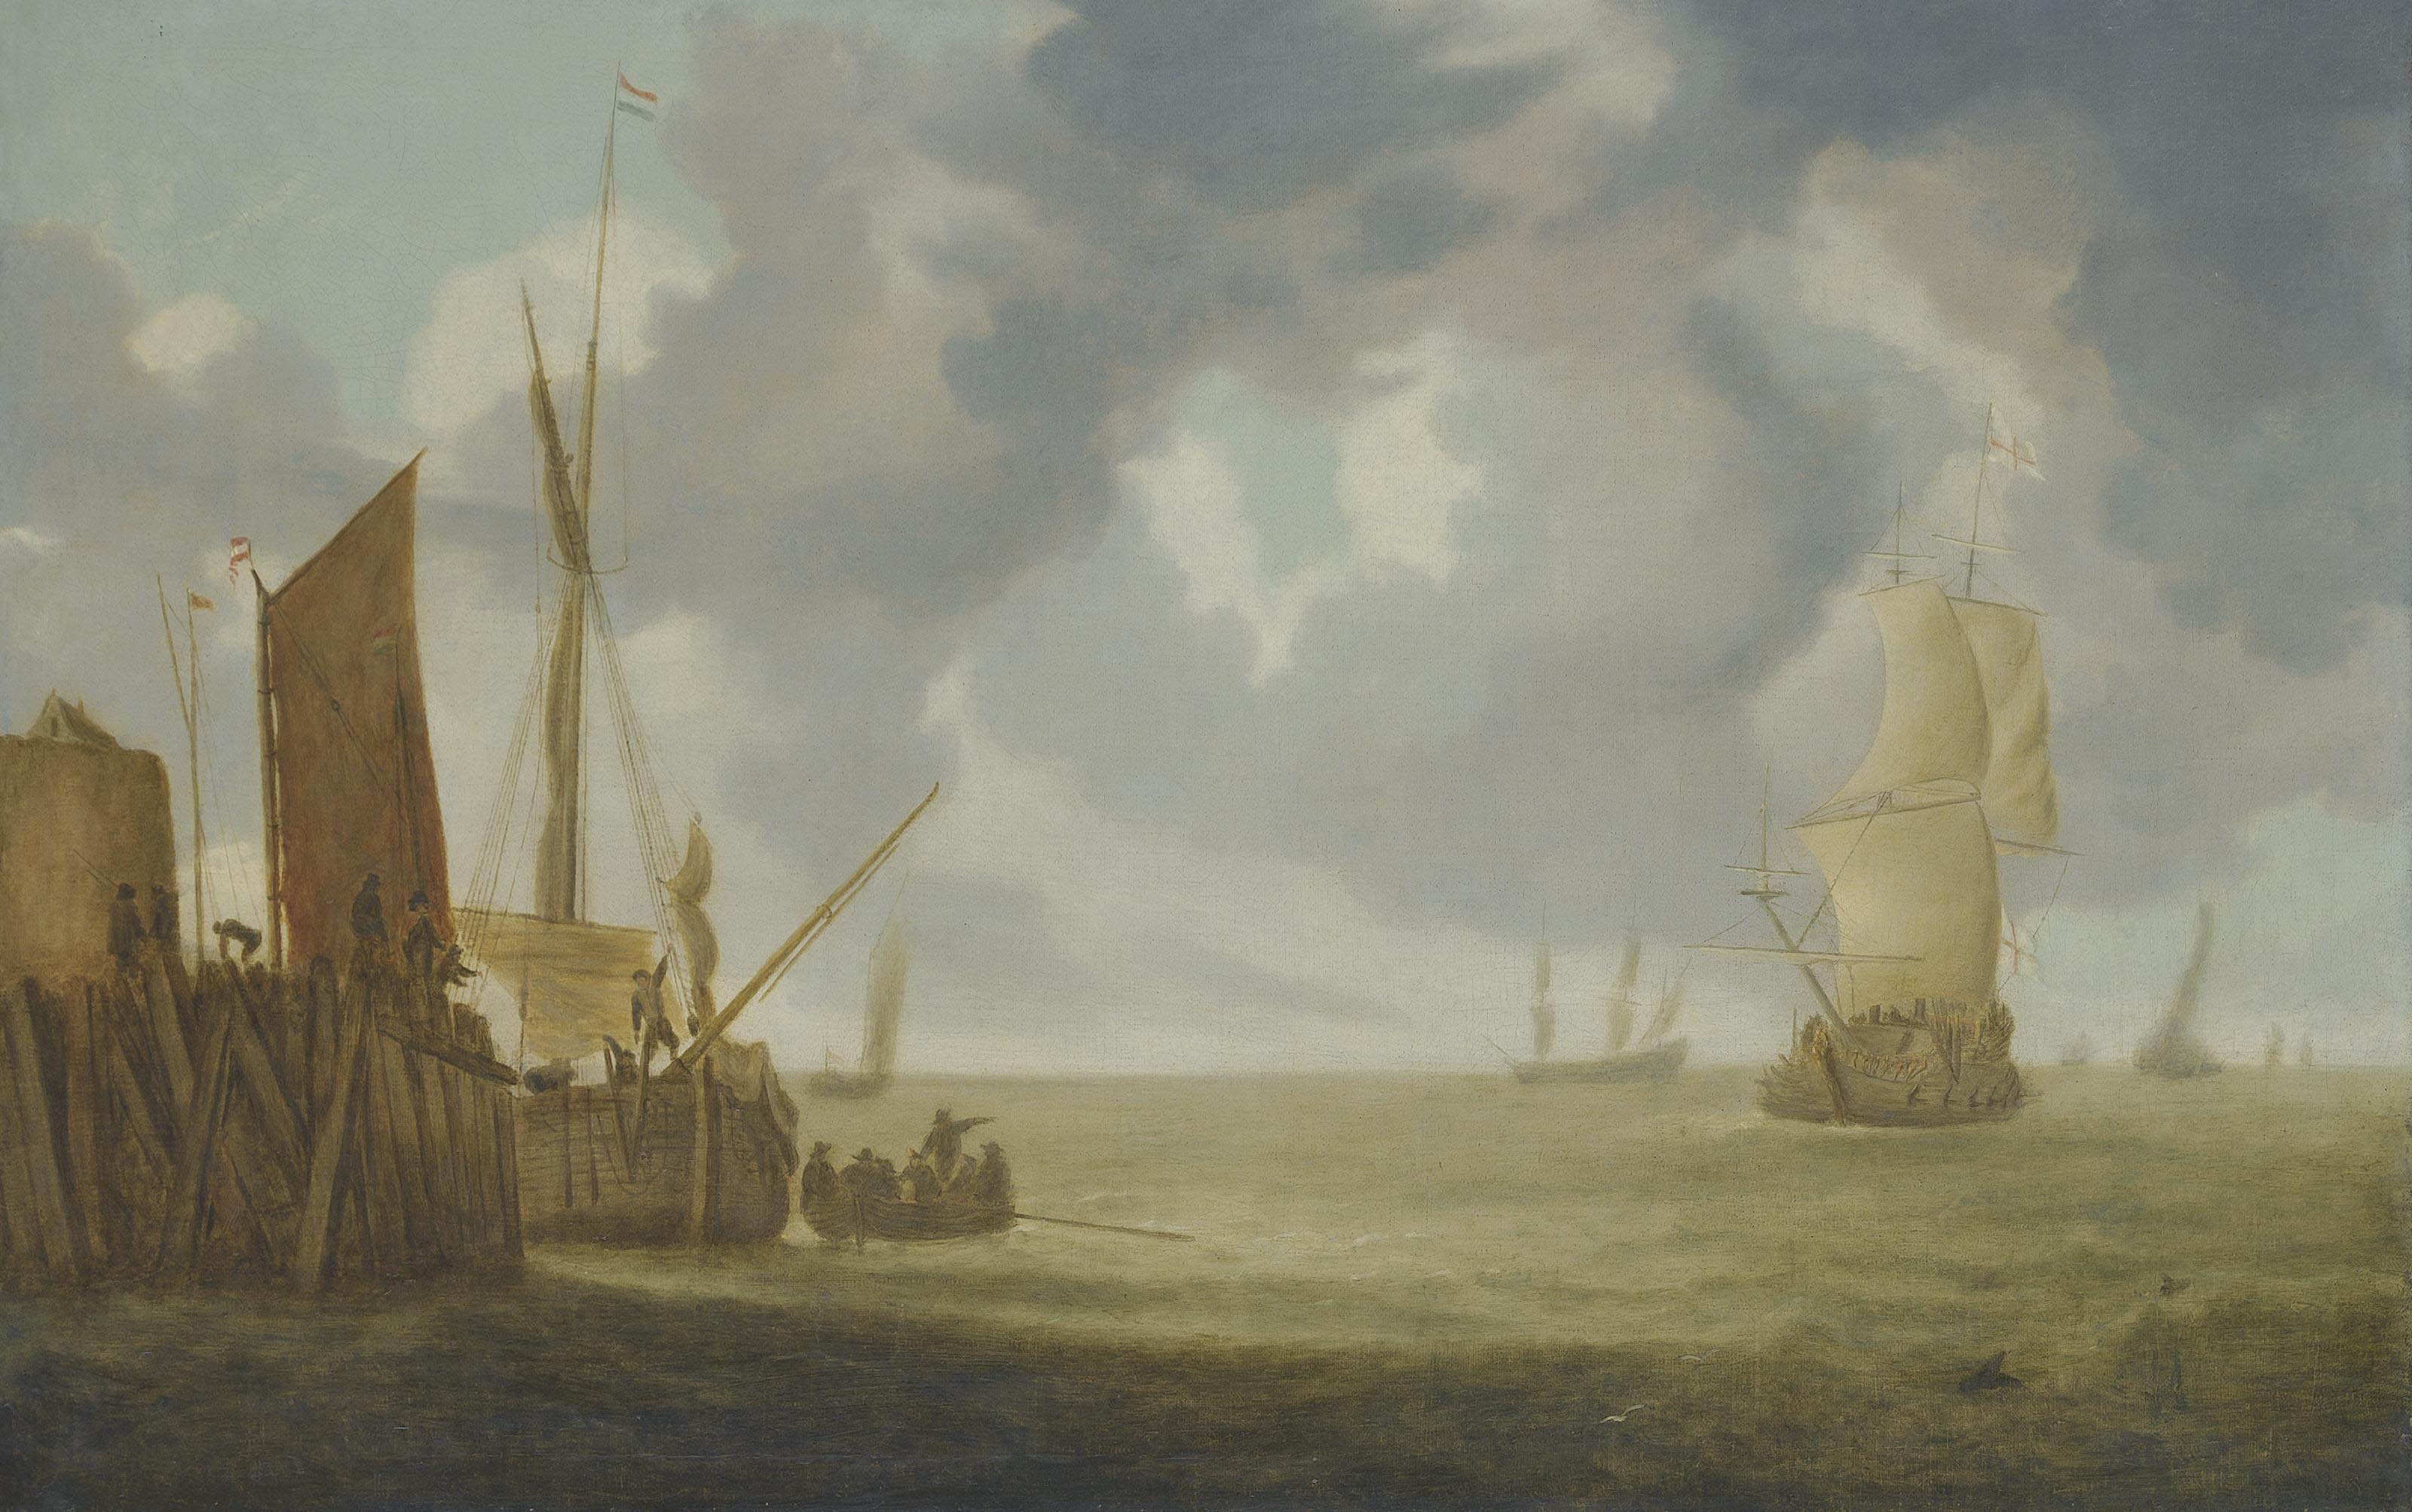 Shipping in a breeze, a man-o'-war and other shipping beyond